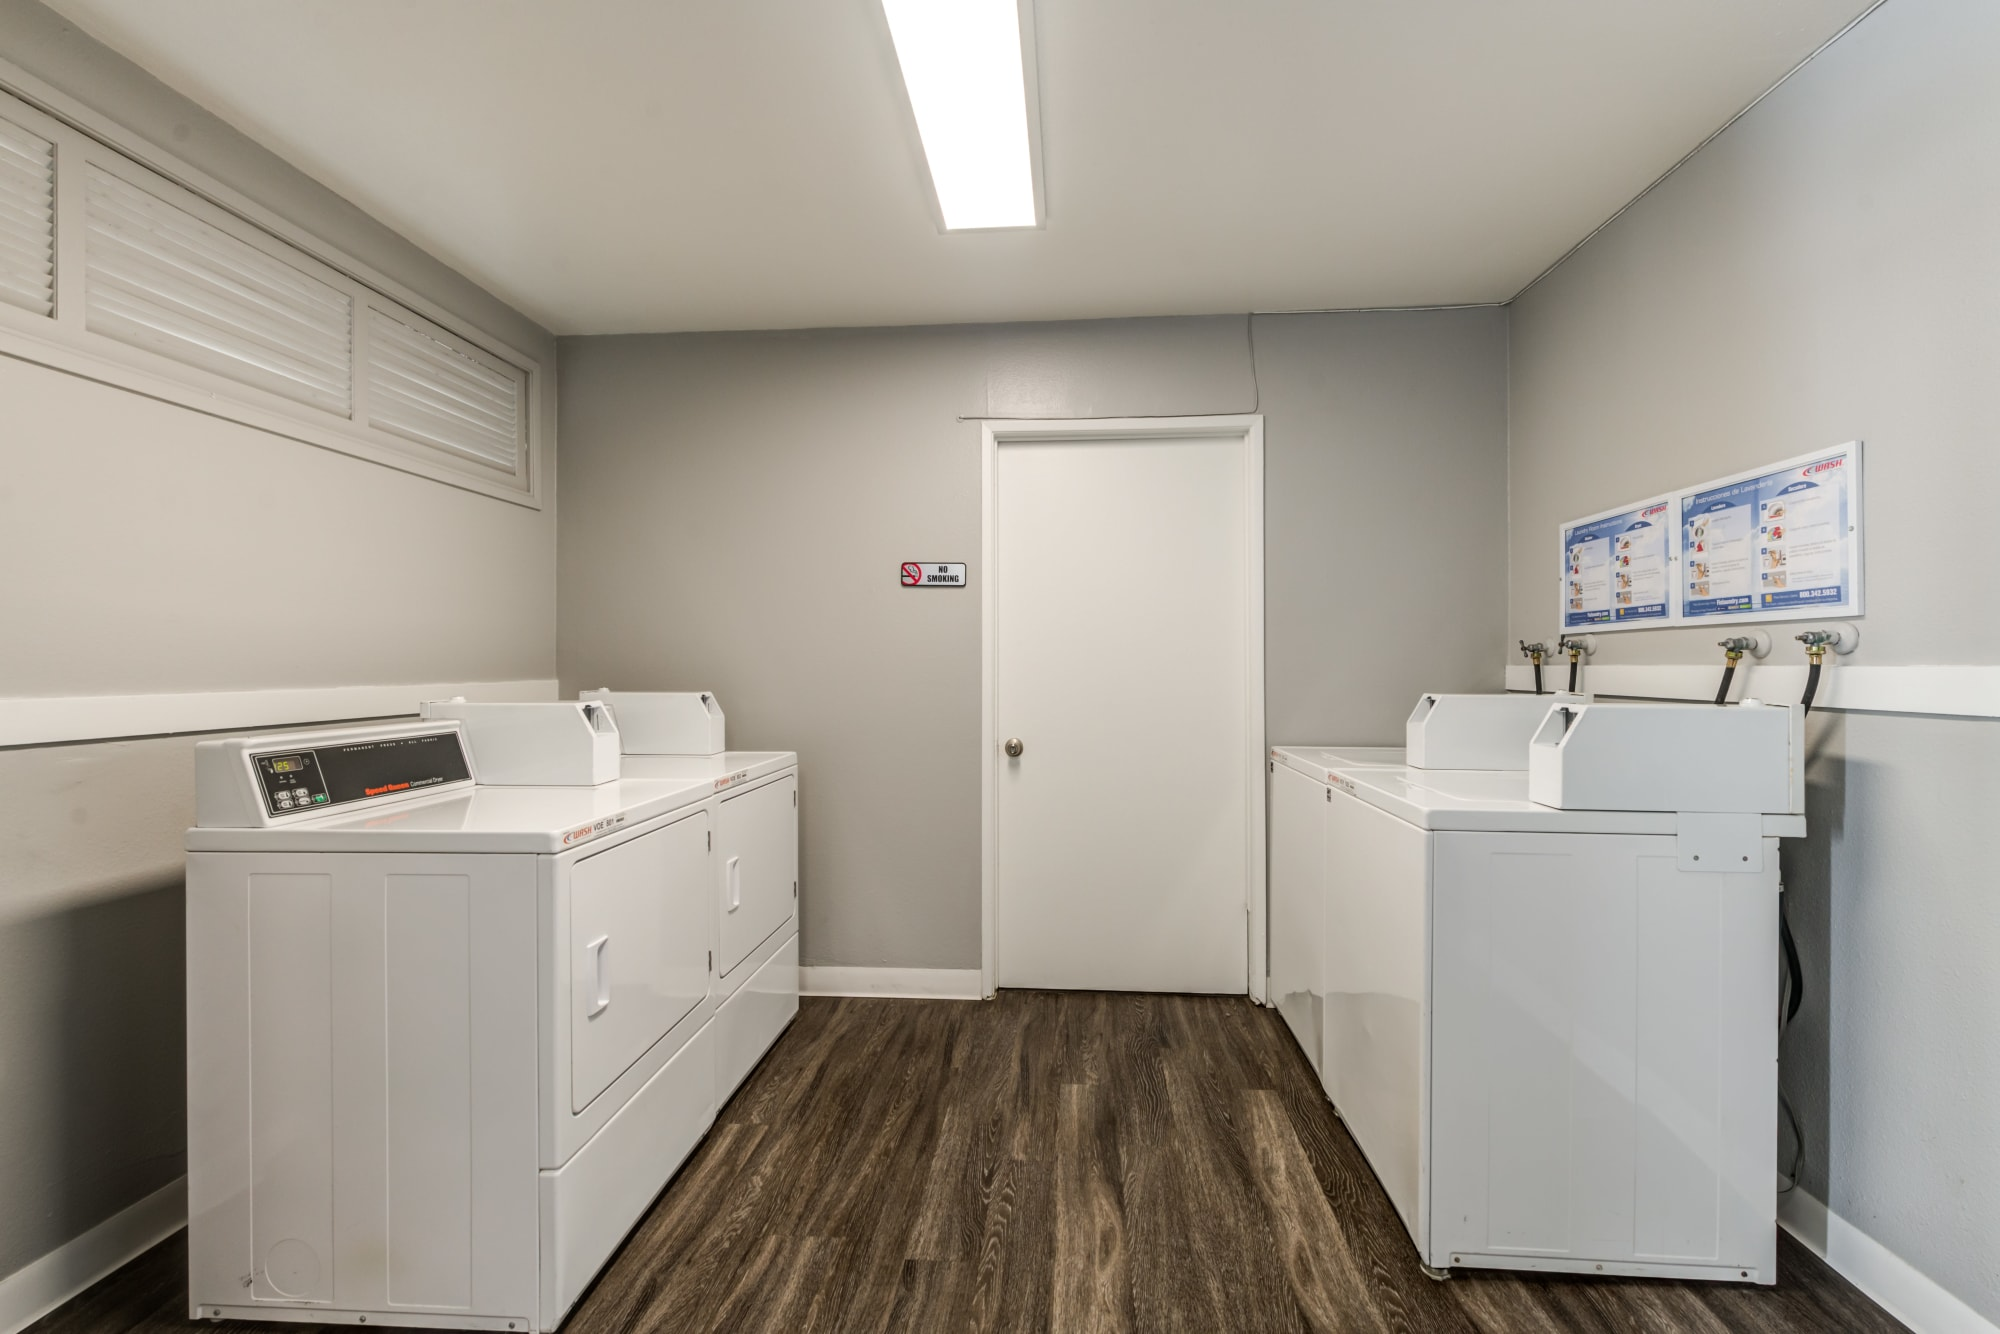 The laundry room at Kendallwood Apartments in Whittier, California